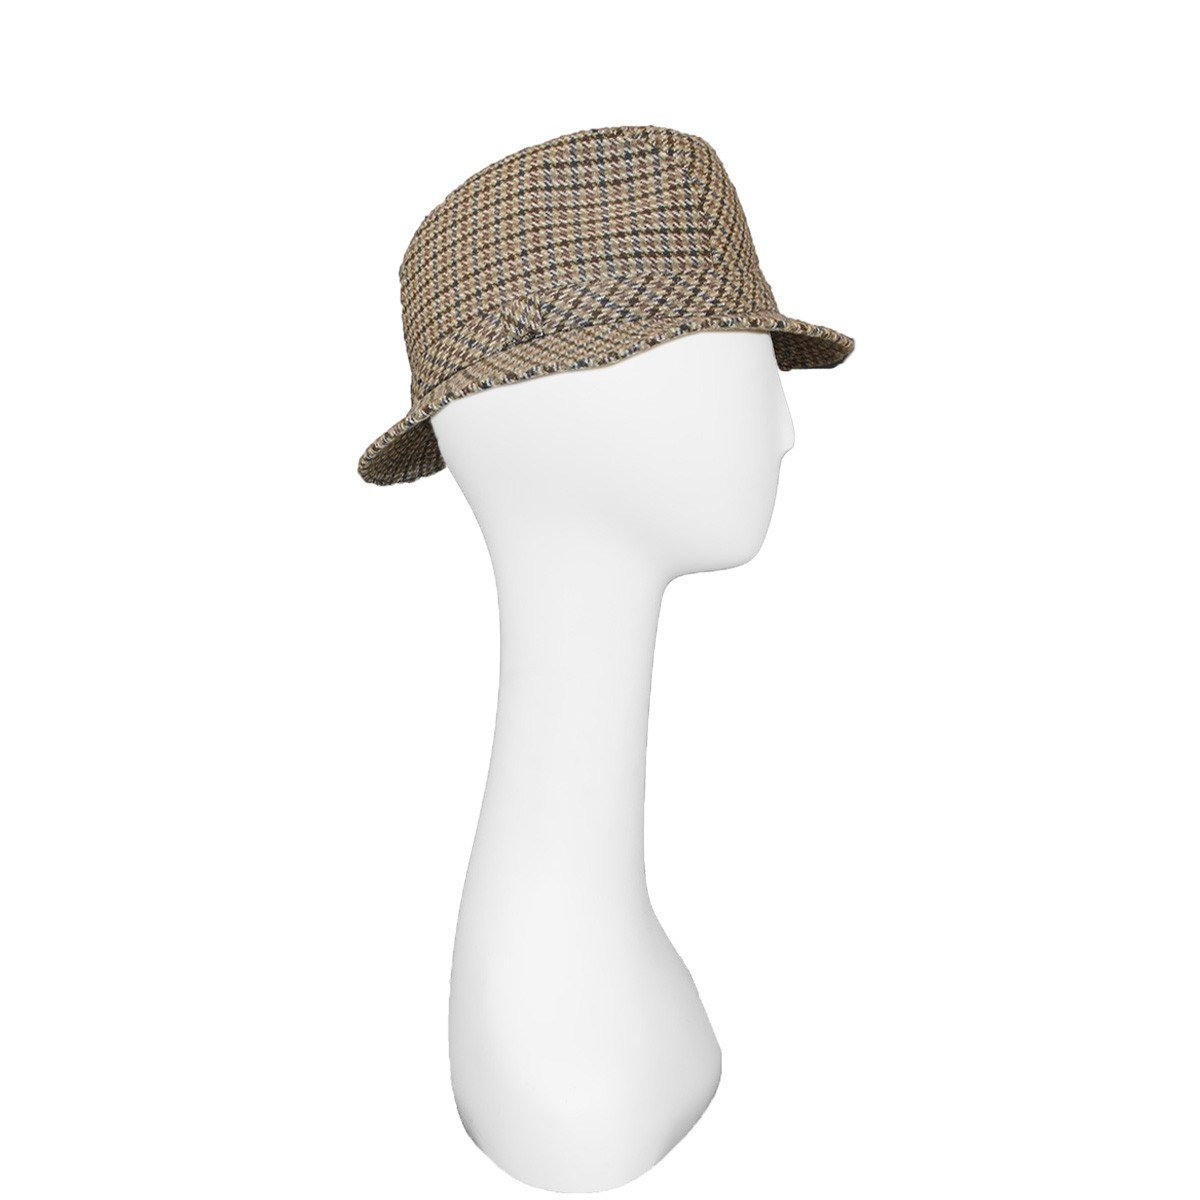 Vintage Brook Brothers Trilby, Brown & Gray Check, Hat Size 7